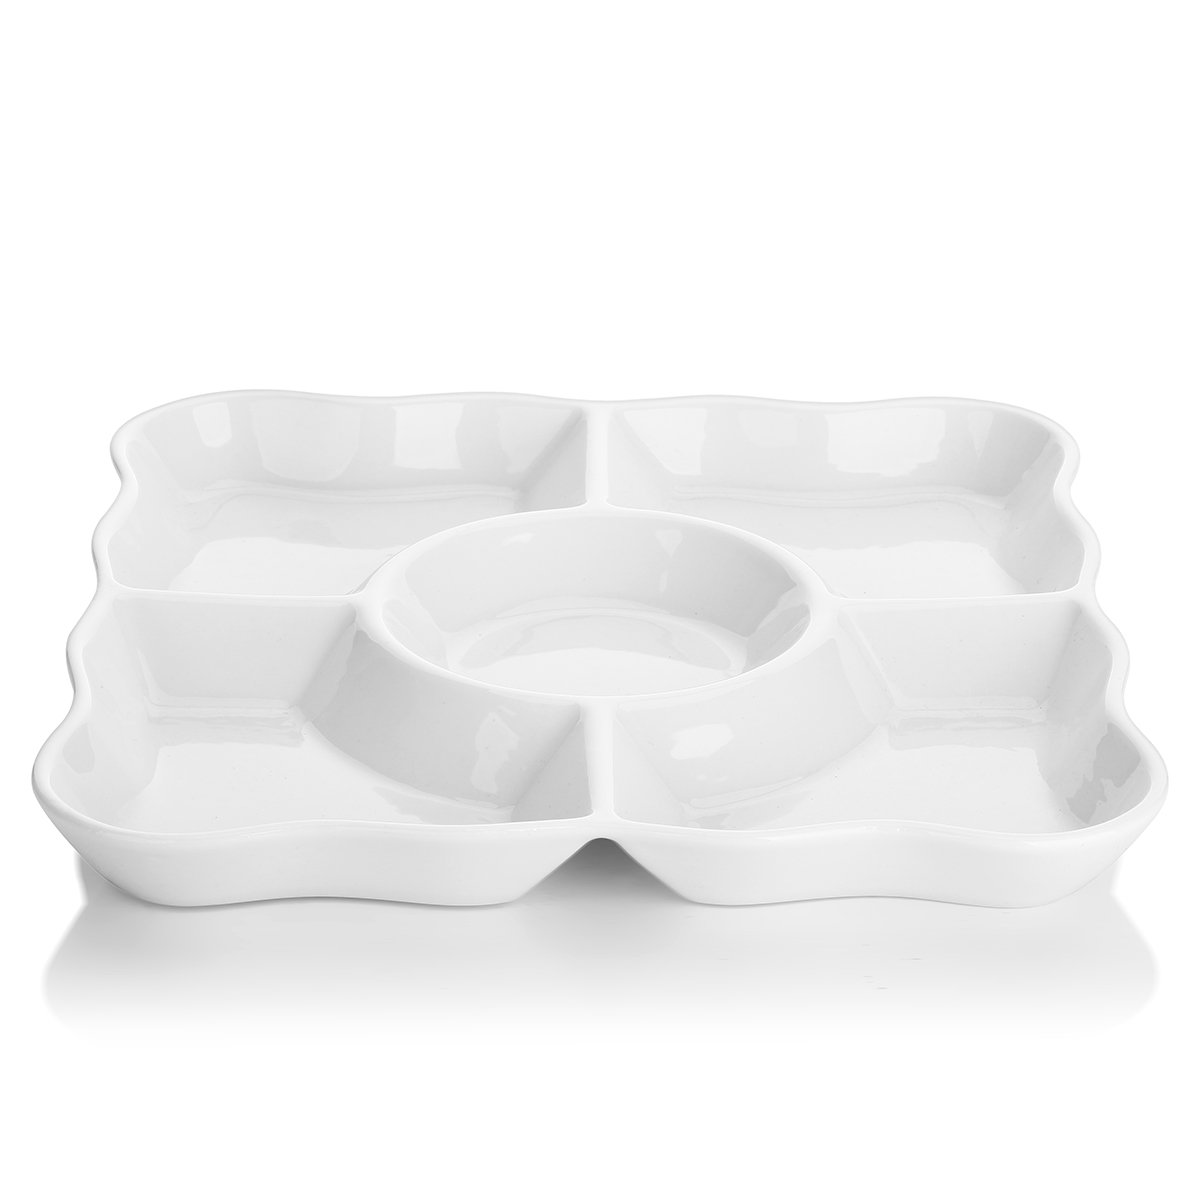 DOWAN 9.4-inch Porcelain Divided Serving Trays/Square Serving Platters with Scalloped Rim, Set of 2,White